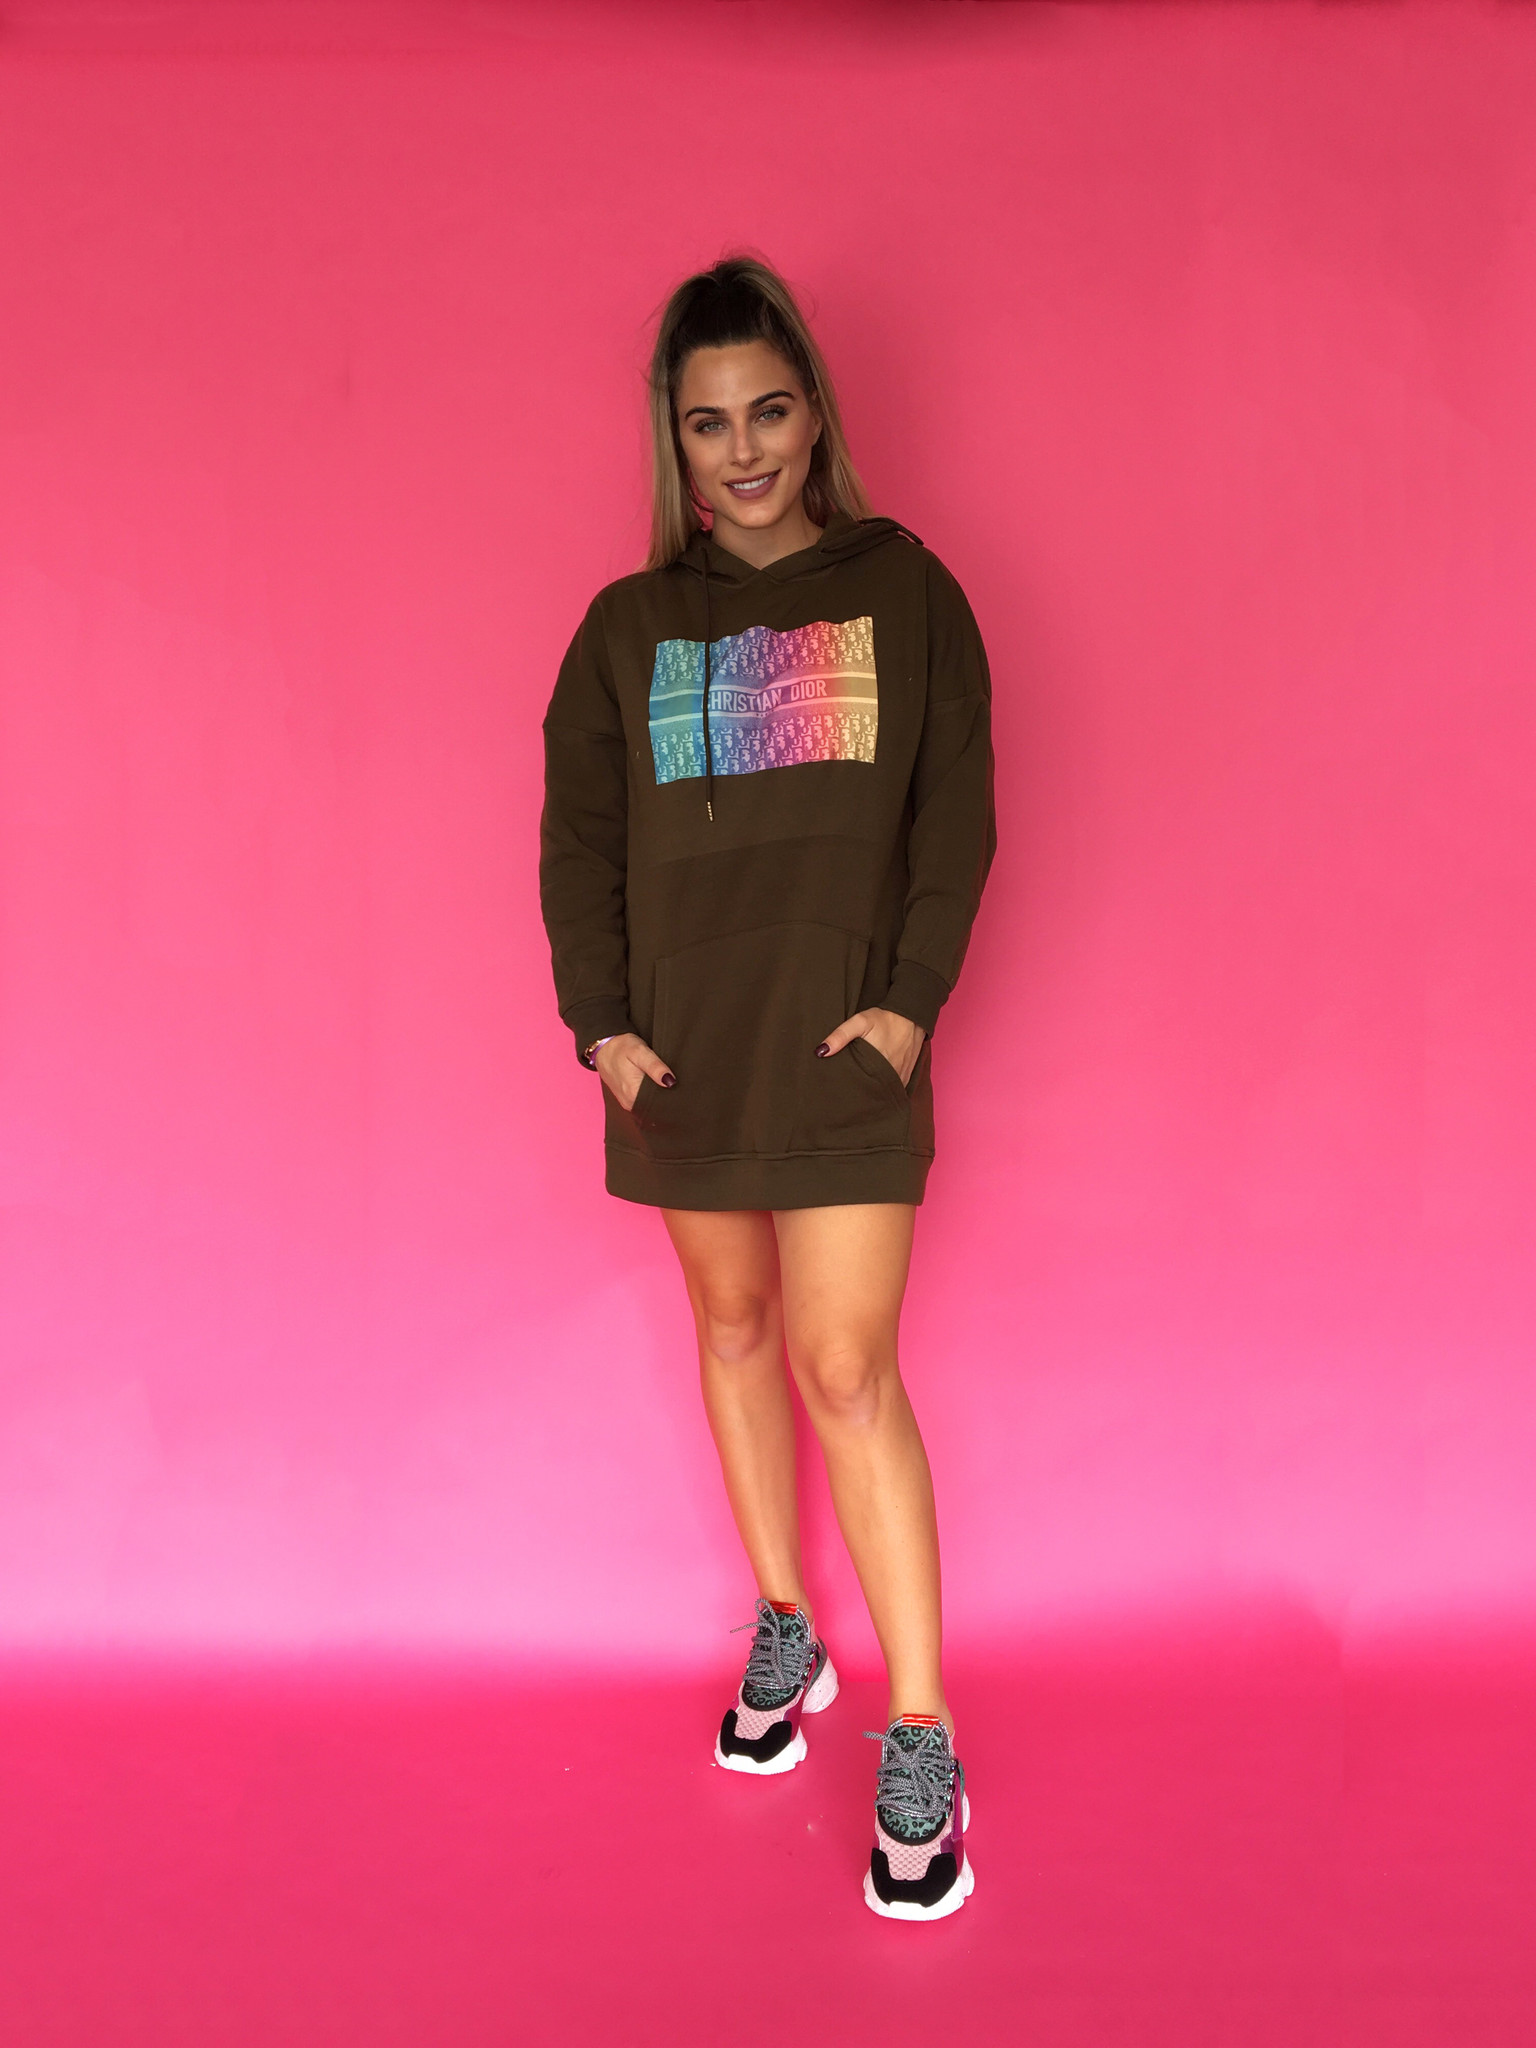 didi block hoodie dress - Copy